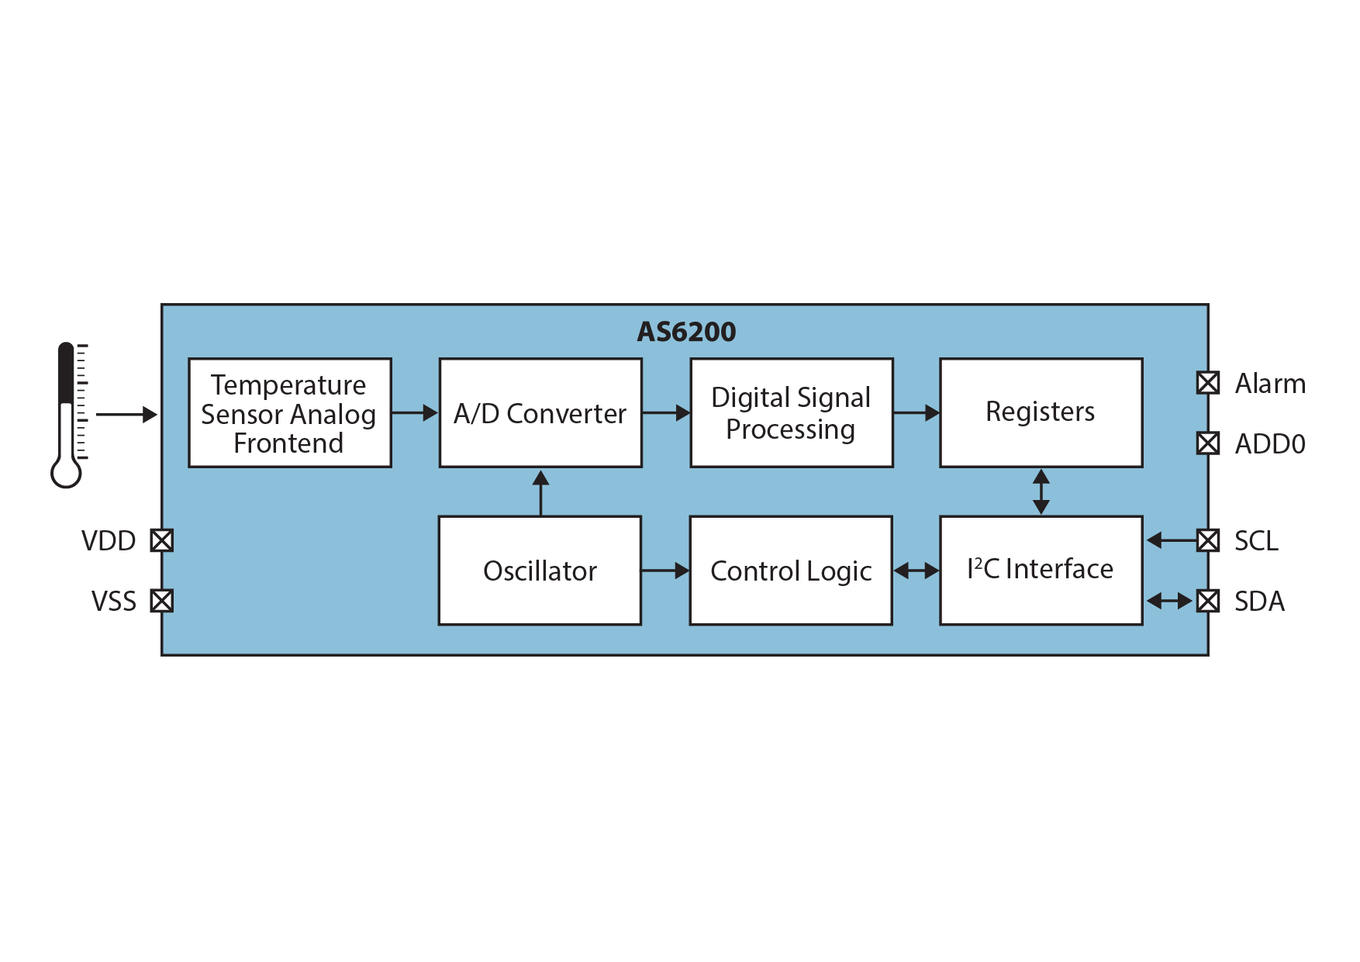 As6200 Ams Temperature Sensor Diagram An Internal Voltage Regulator Enables Stable Accuracy Independent Of The Supply Between 18 To 36v For Power Sensitive Applications